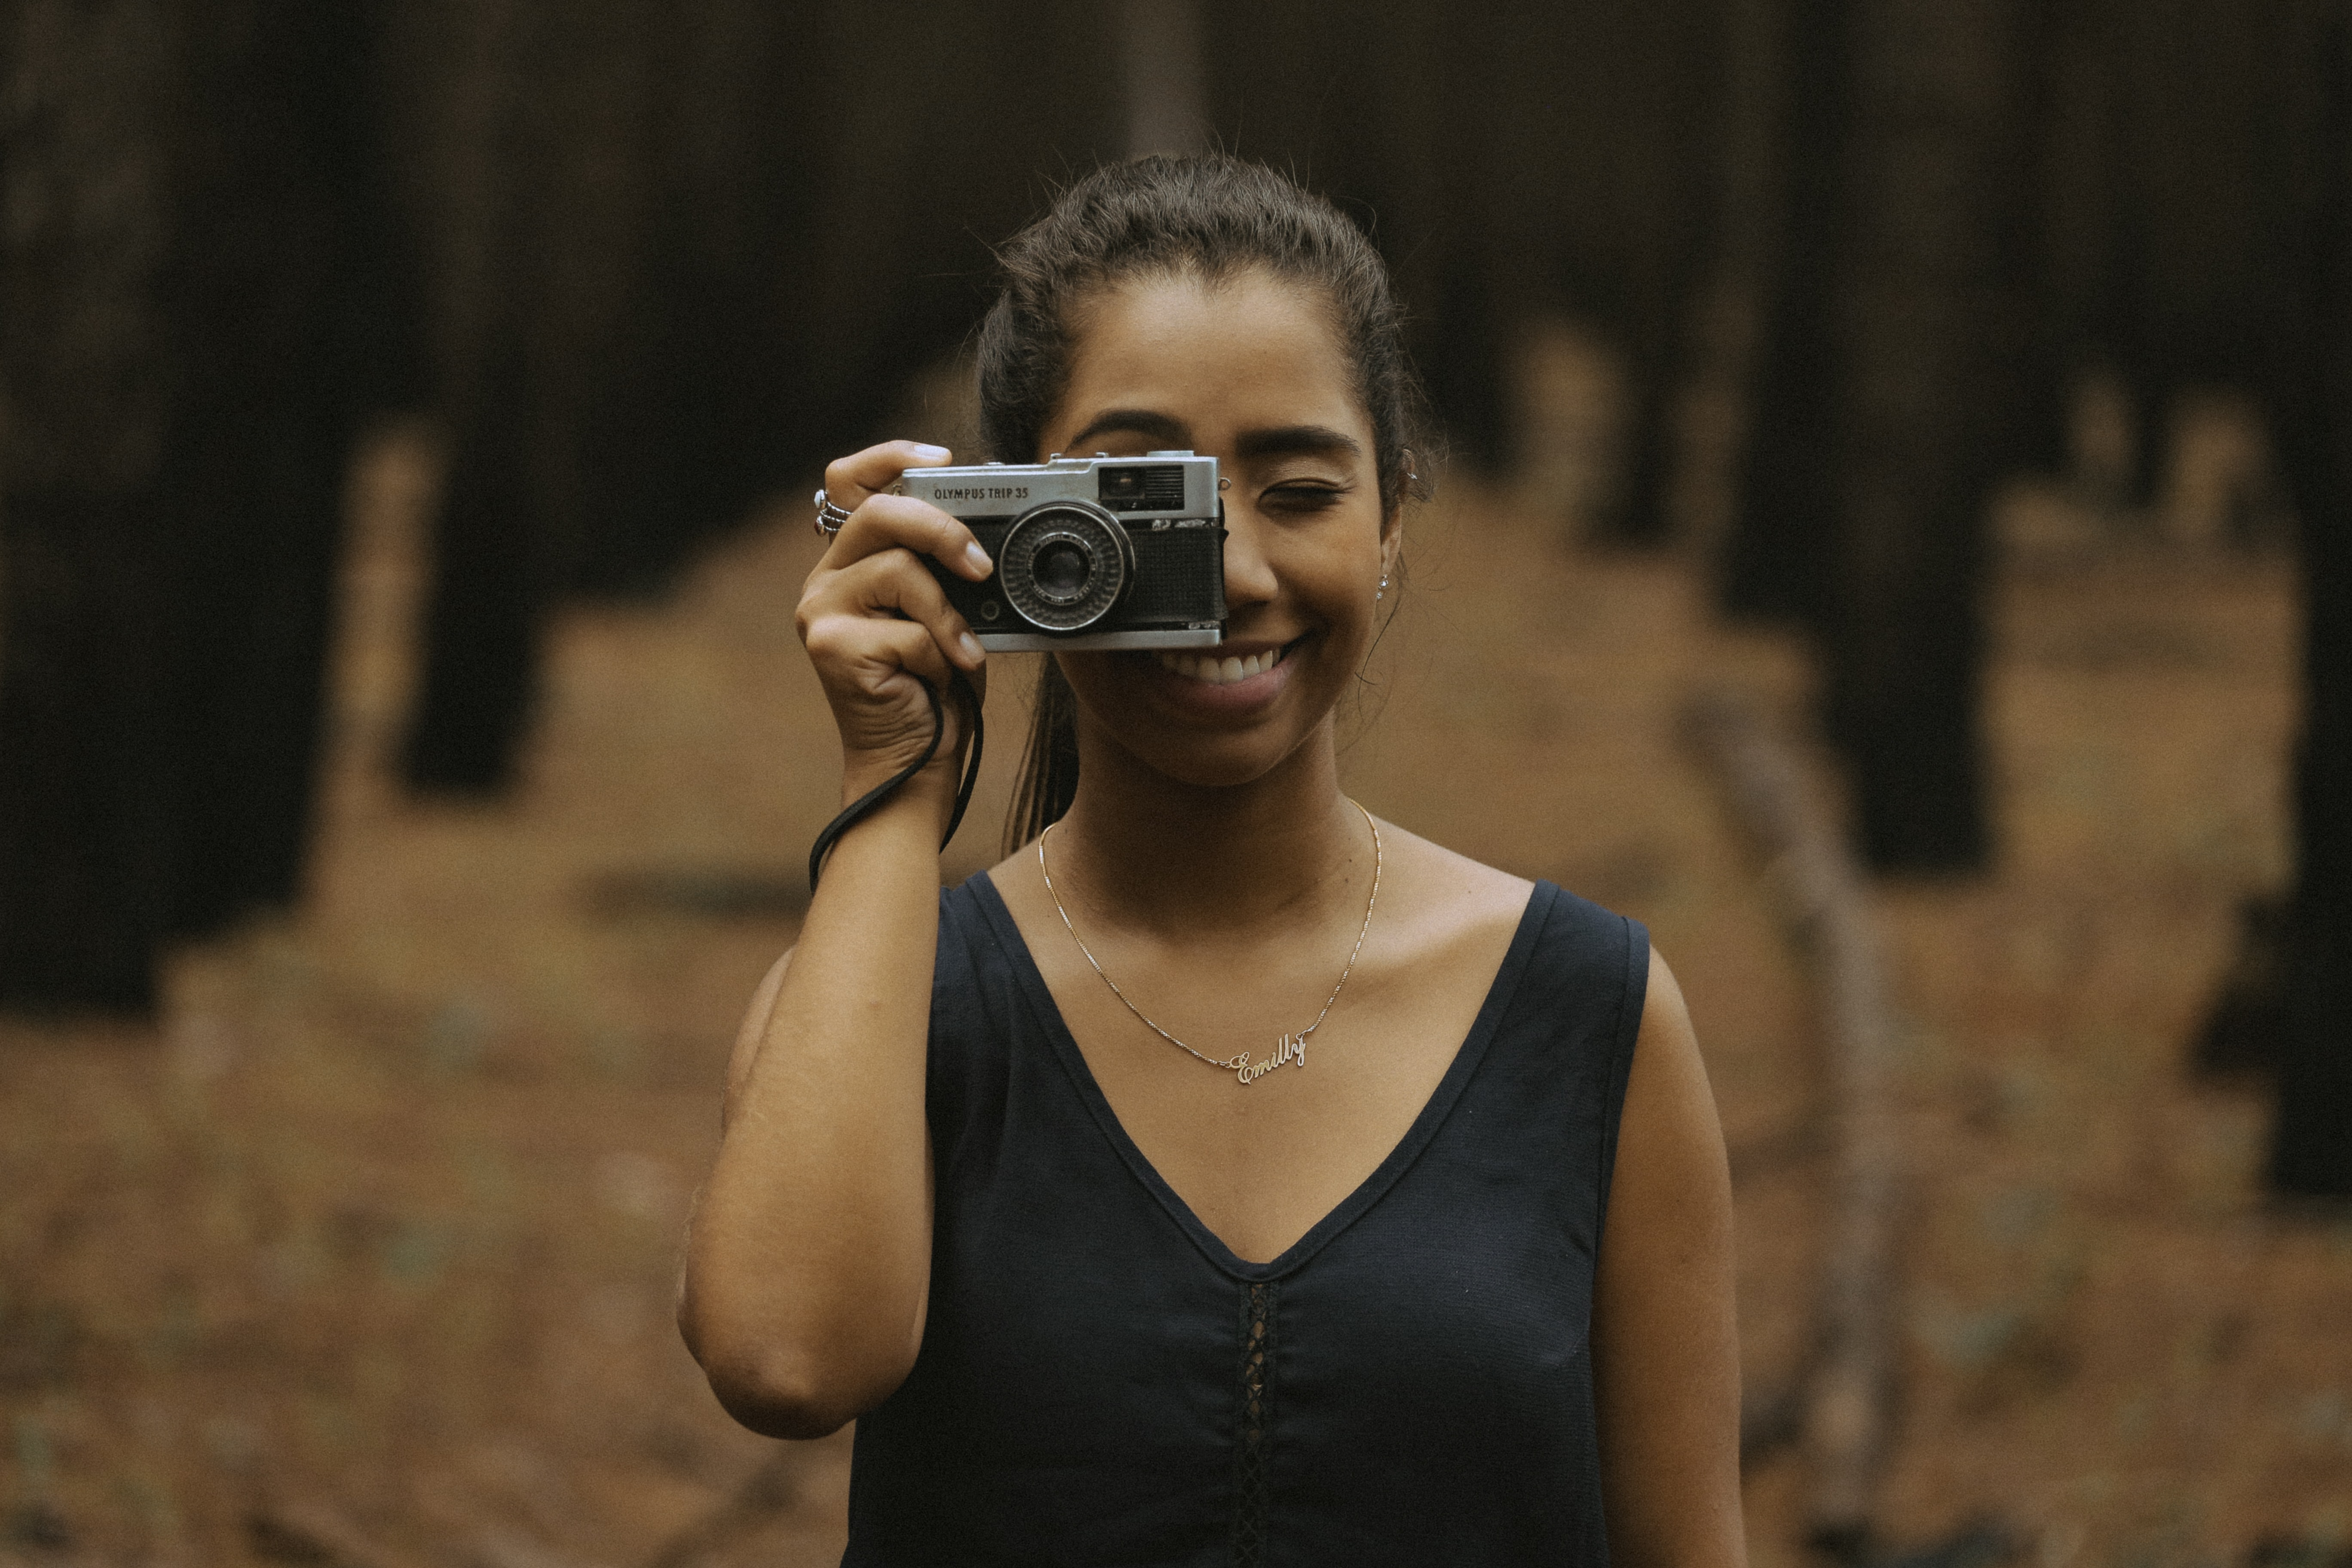 A smiling young woman taking a photo with a vintage camera